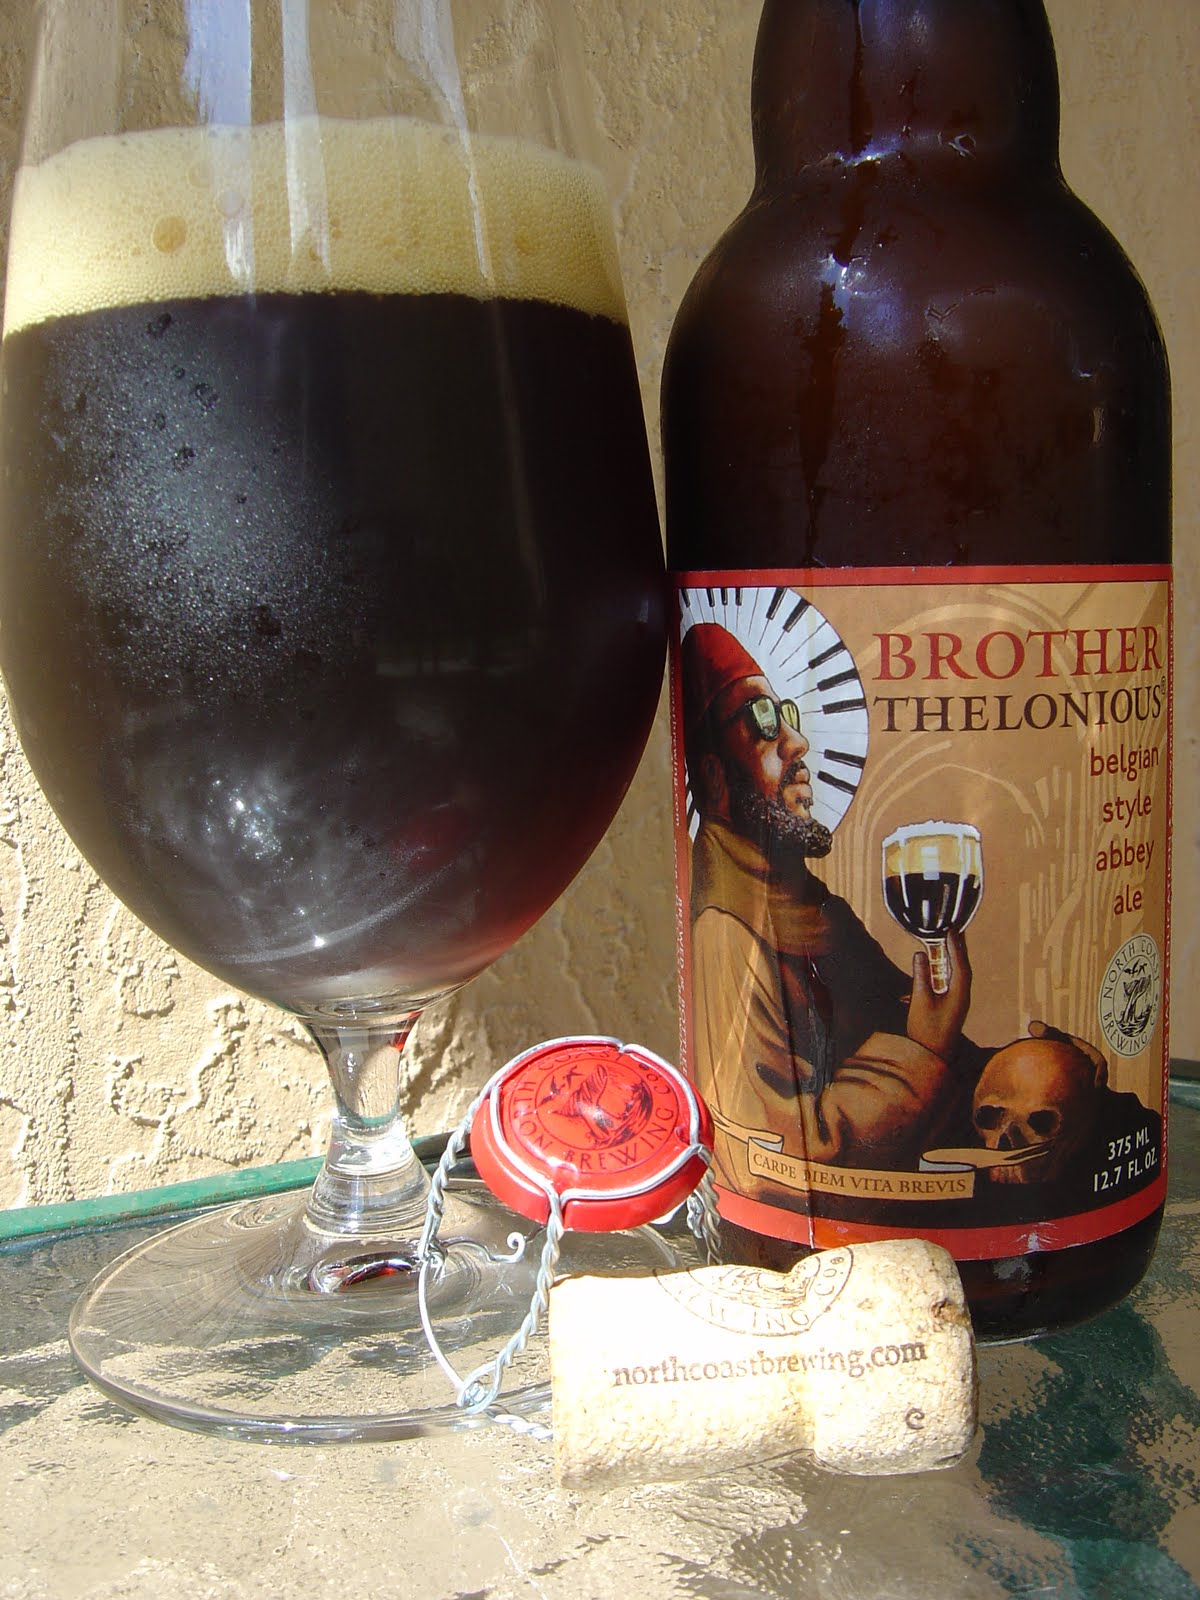 Daily Beer Review: Brother Thelonious Belgian-Style Abbey Ale